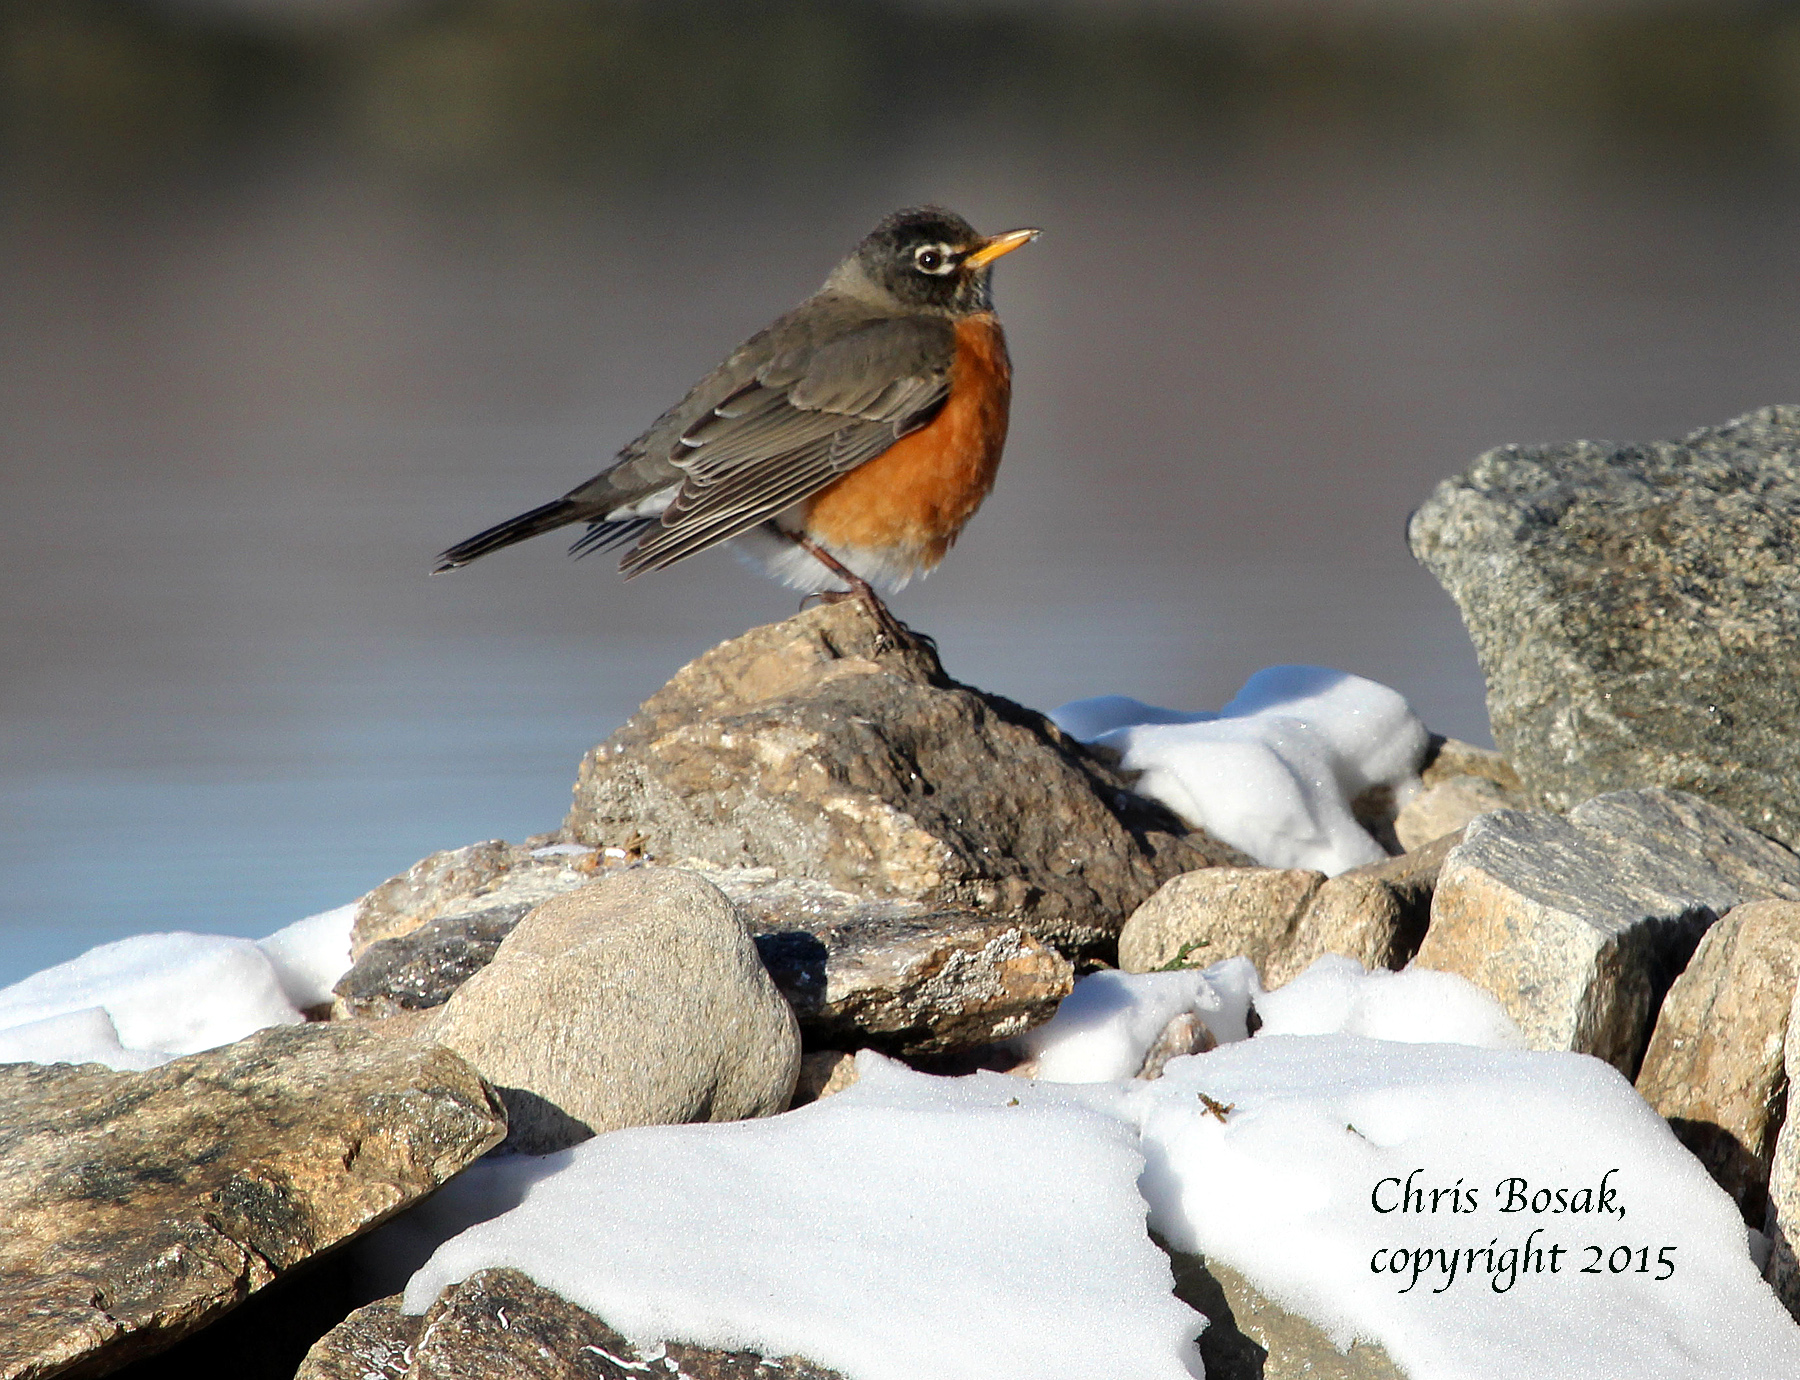 Photo by Chris Bosak An American Robin perches on a rock at Weed Beach in Darien, Conn., in Jan. 2015.